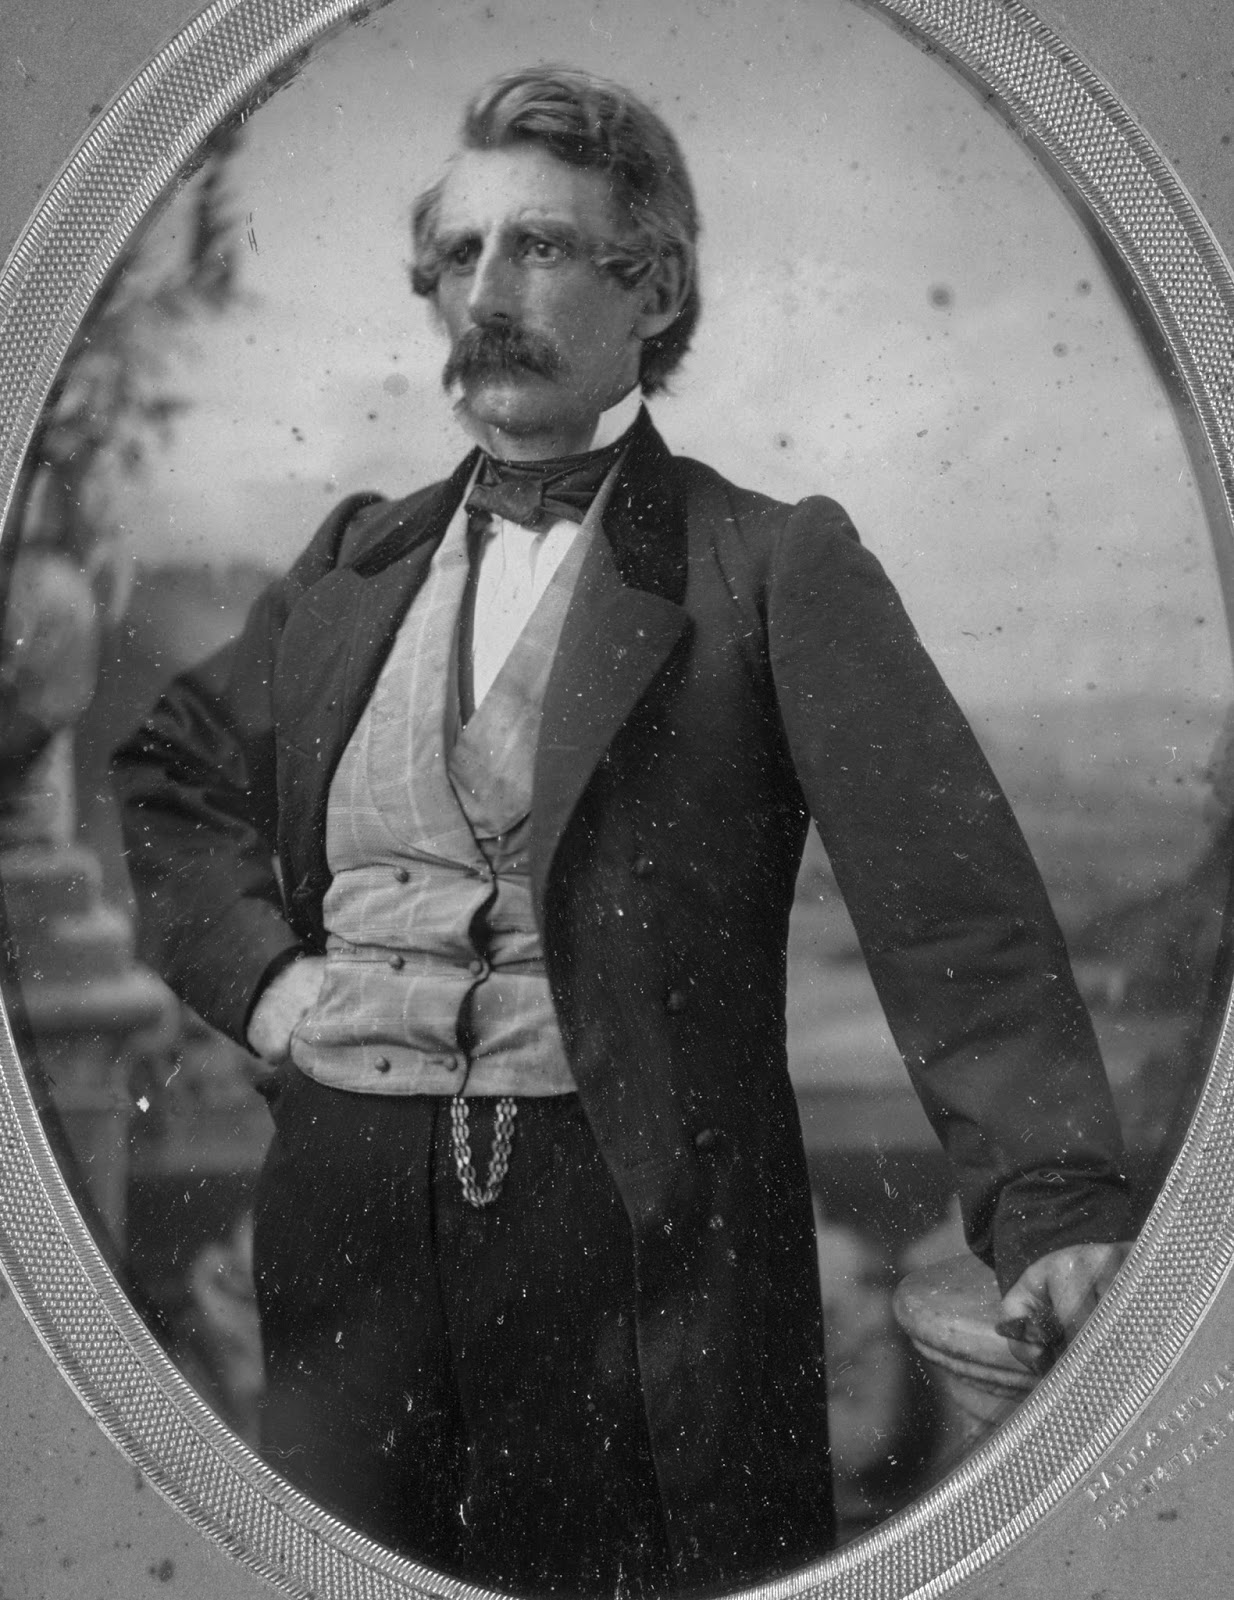 The Chubachus Library of Photographic History: Daguerreotype